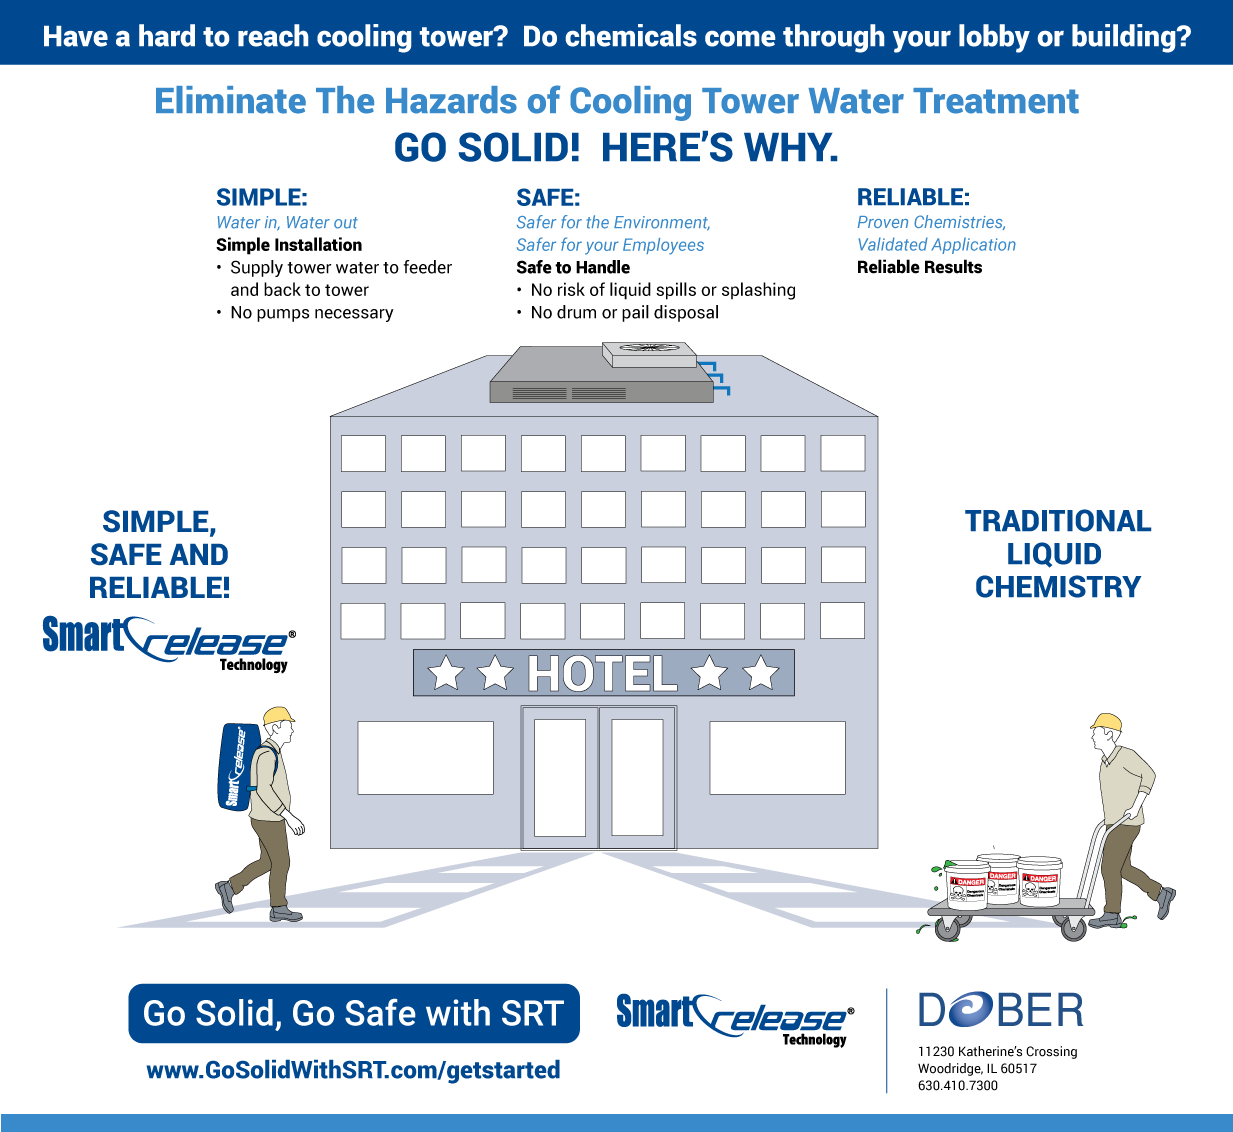 Go-Solid-Go-Safe-Illo-HOTEL.png